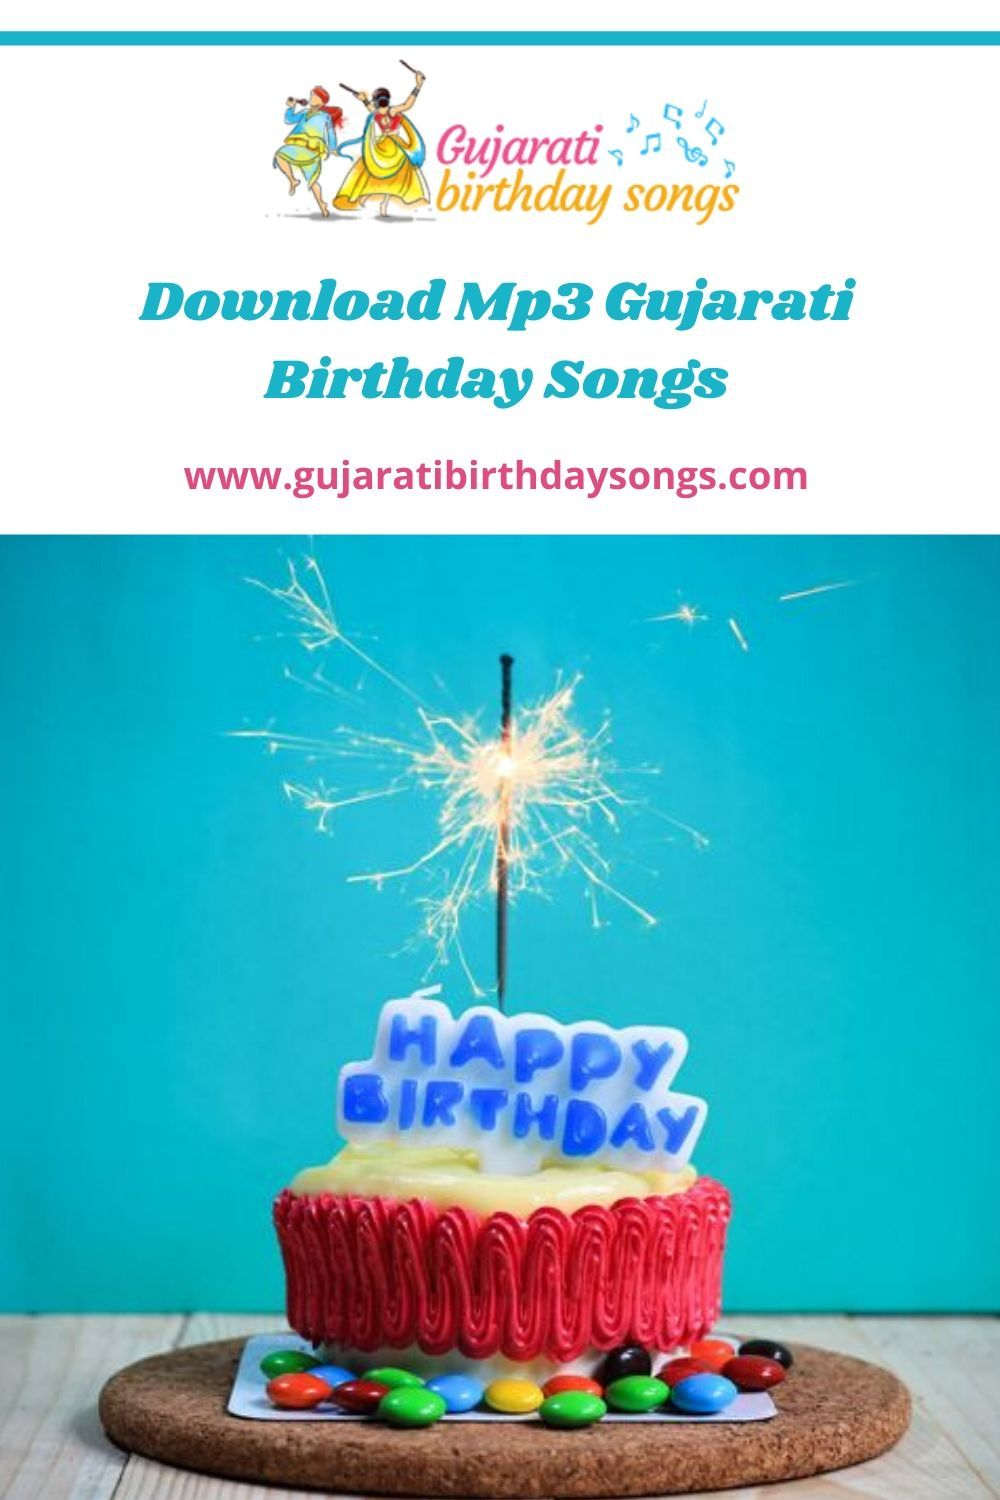 Pin on Gujarati Birthday Song Download Mp3